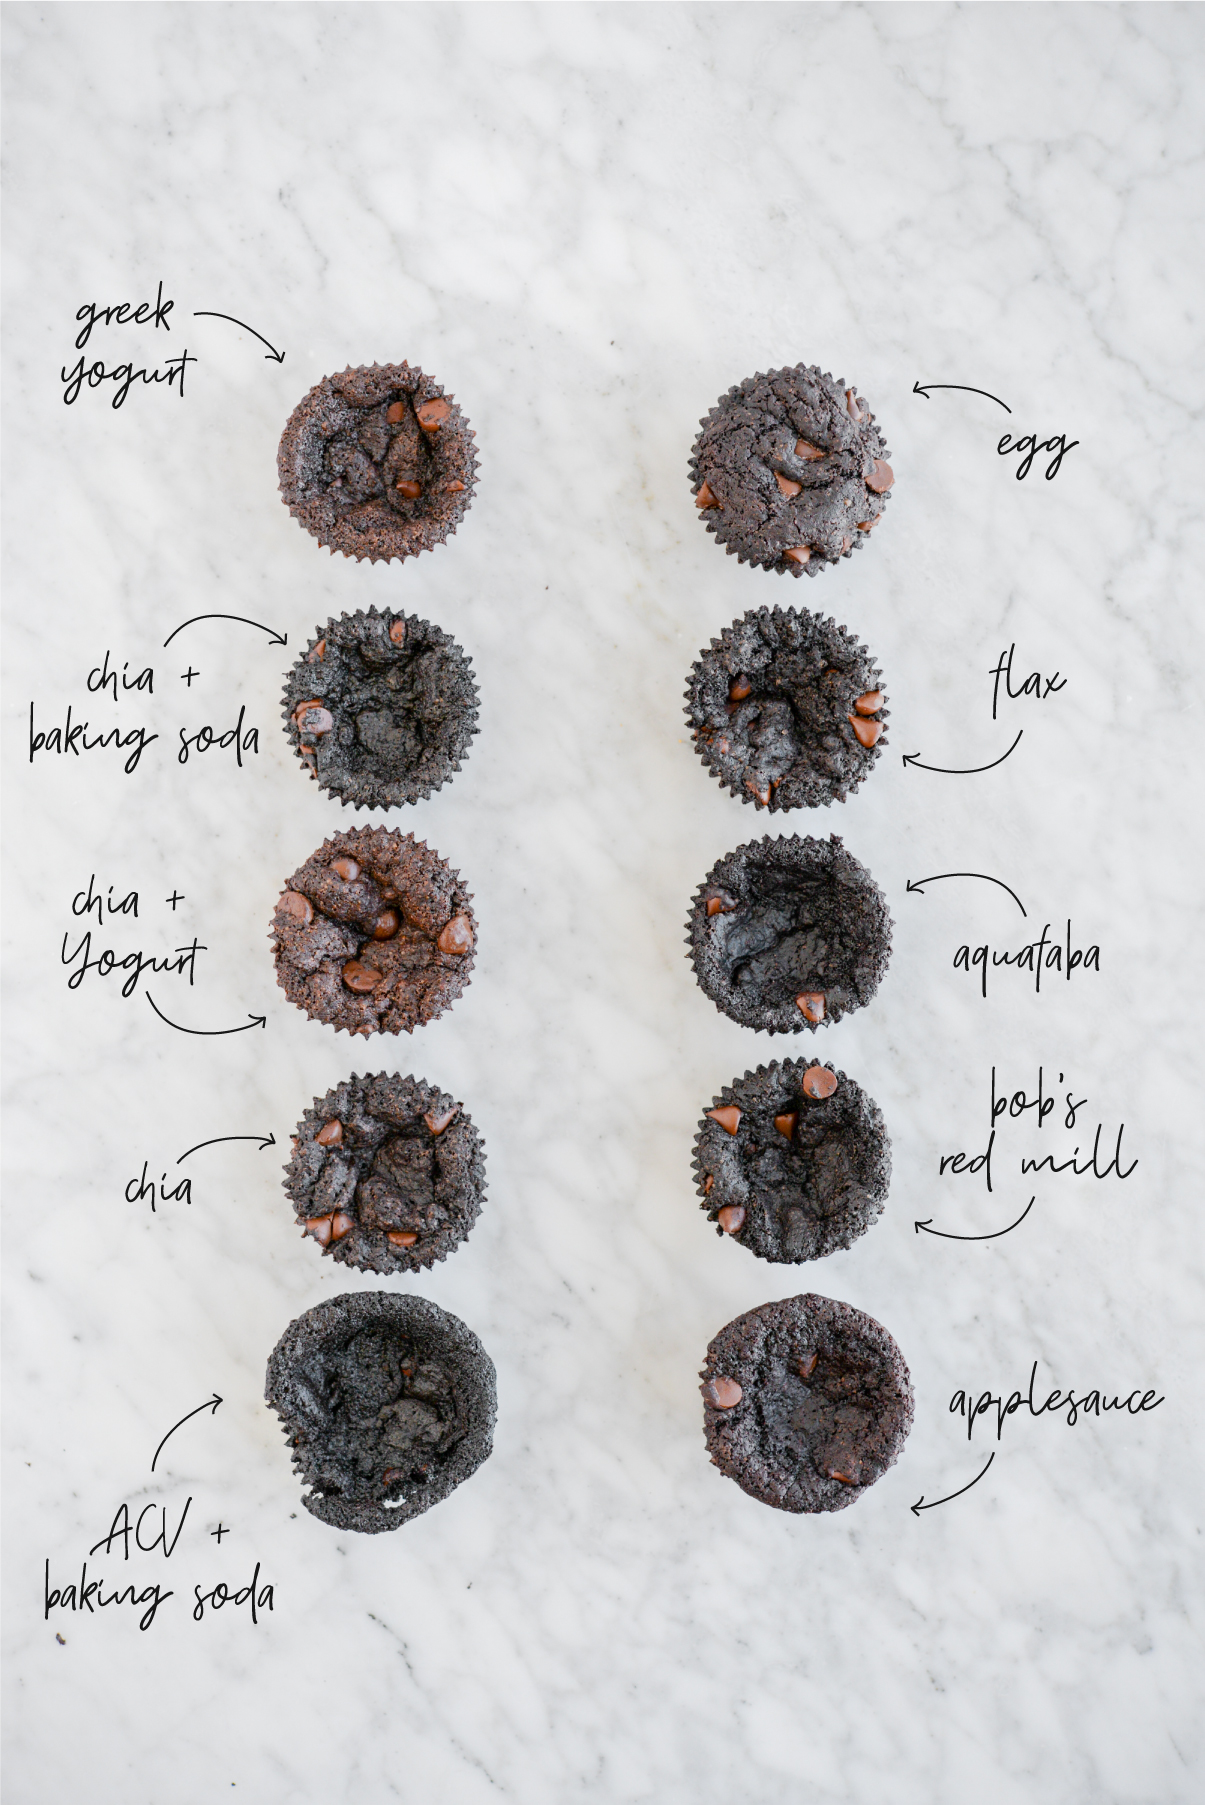 10 brownie muffins lined up in two rows to compare different egg substitutes